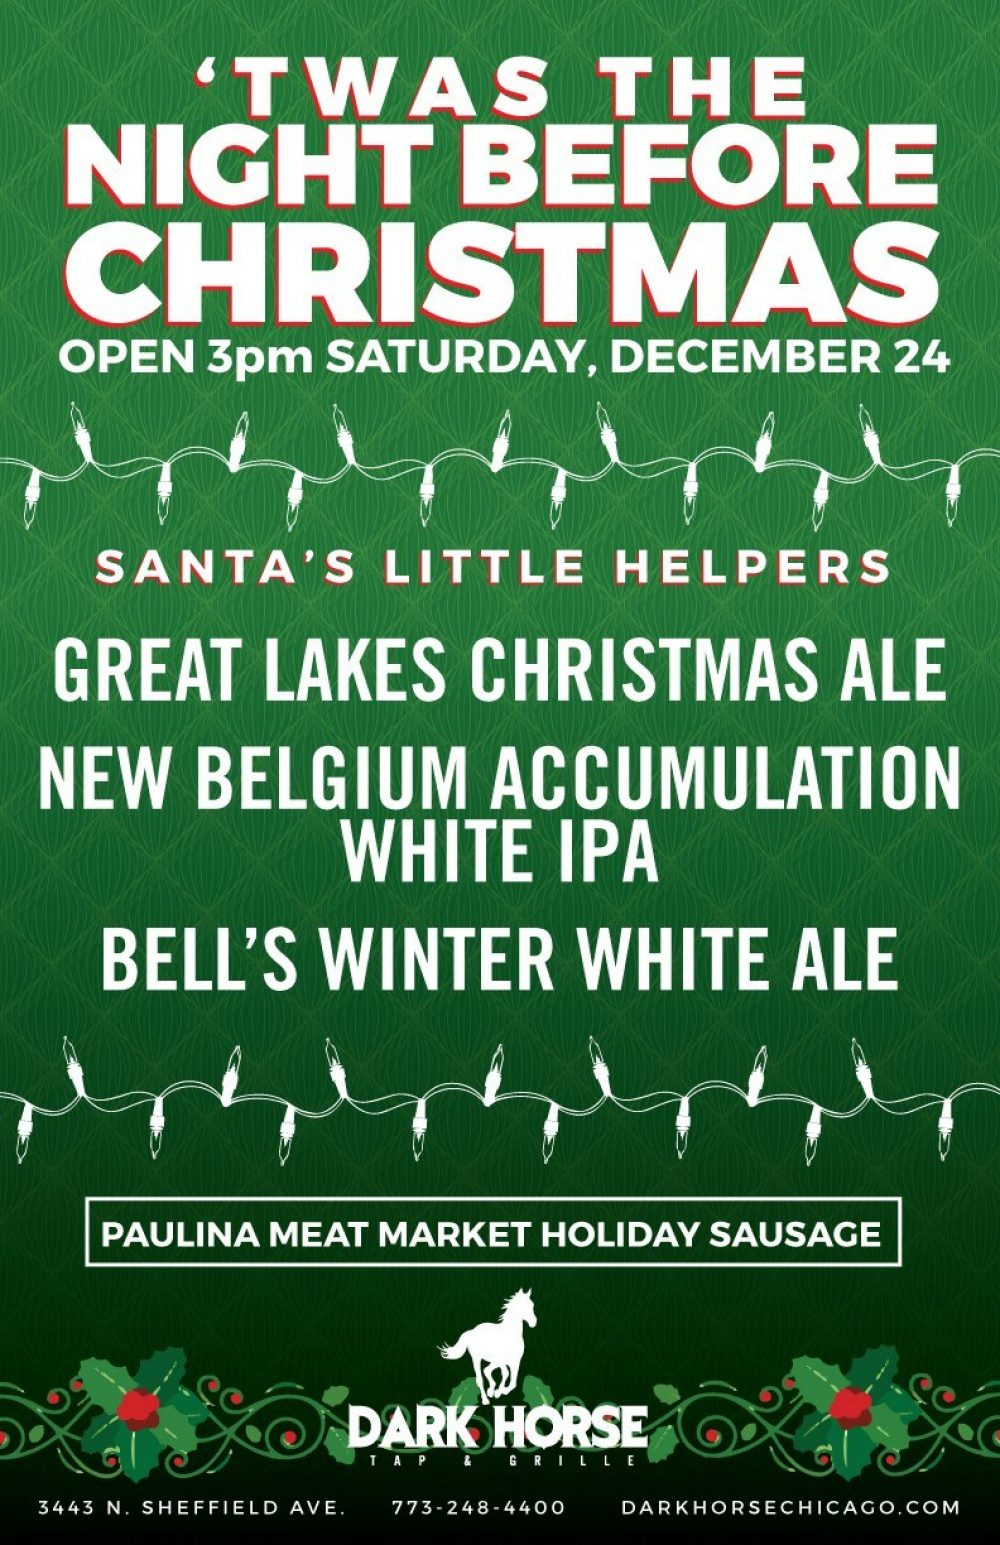 Christmas Eve at Dark Horse Tap & Grille